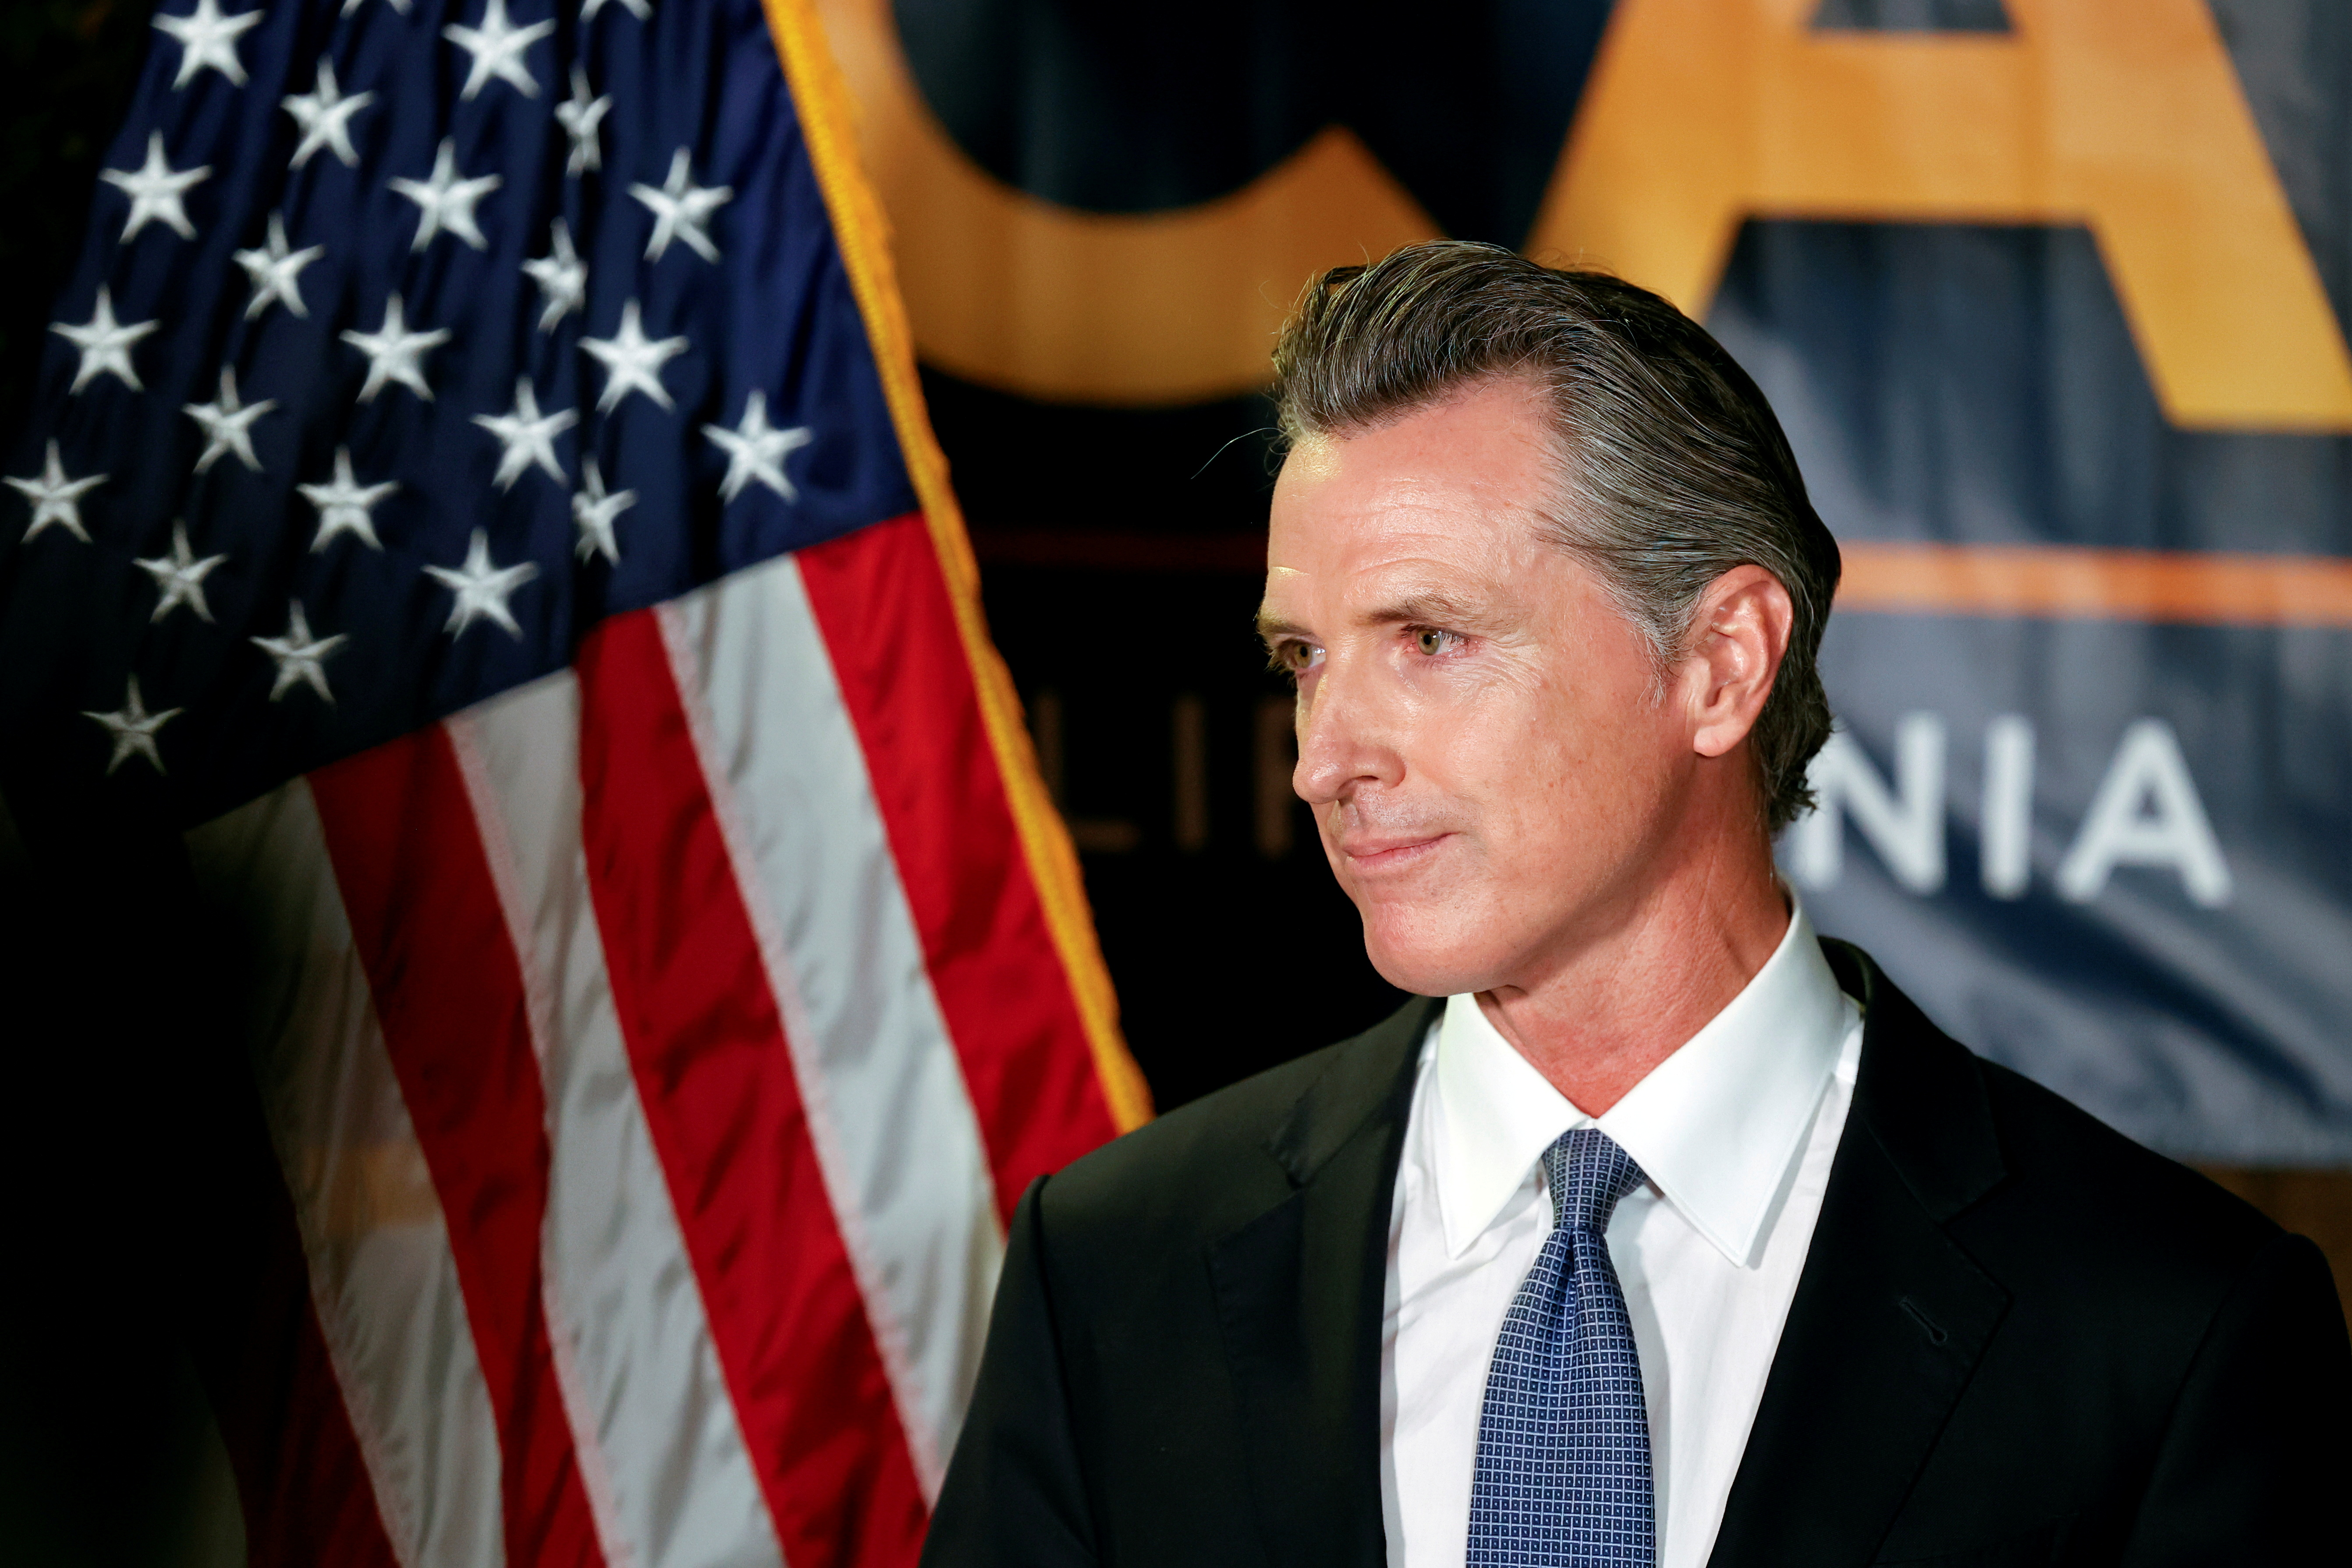 California Governor Gavin Newsom makes an appearance after the polls close on the recall election, at the California Democratic Party headquarters in Sacramento, California, U.S., September 14, 2021.  REUTERS/Fred Greaves